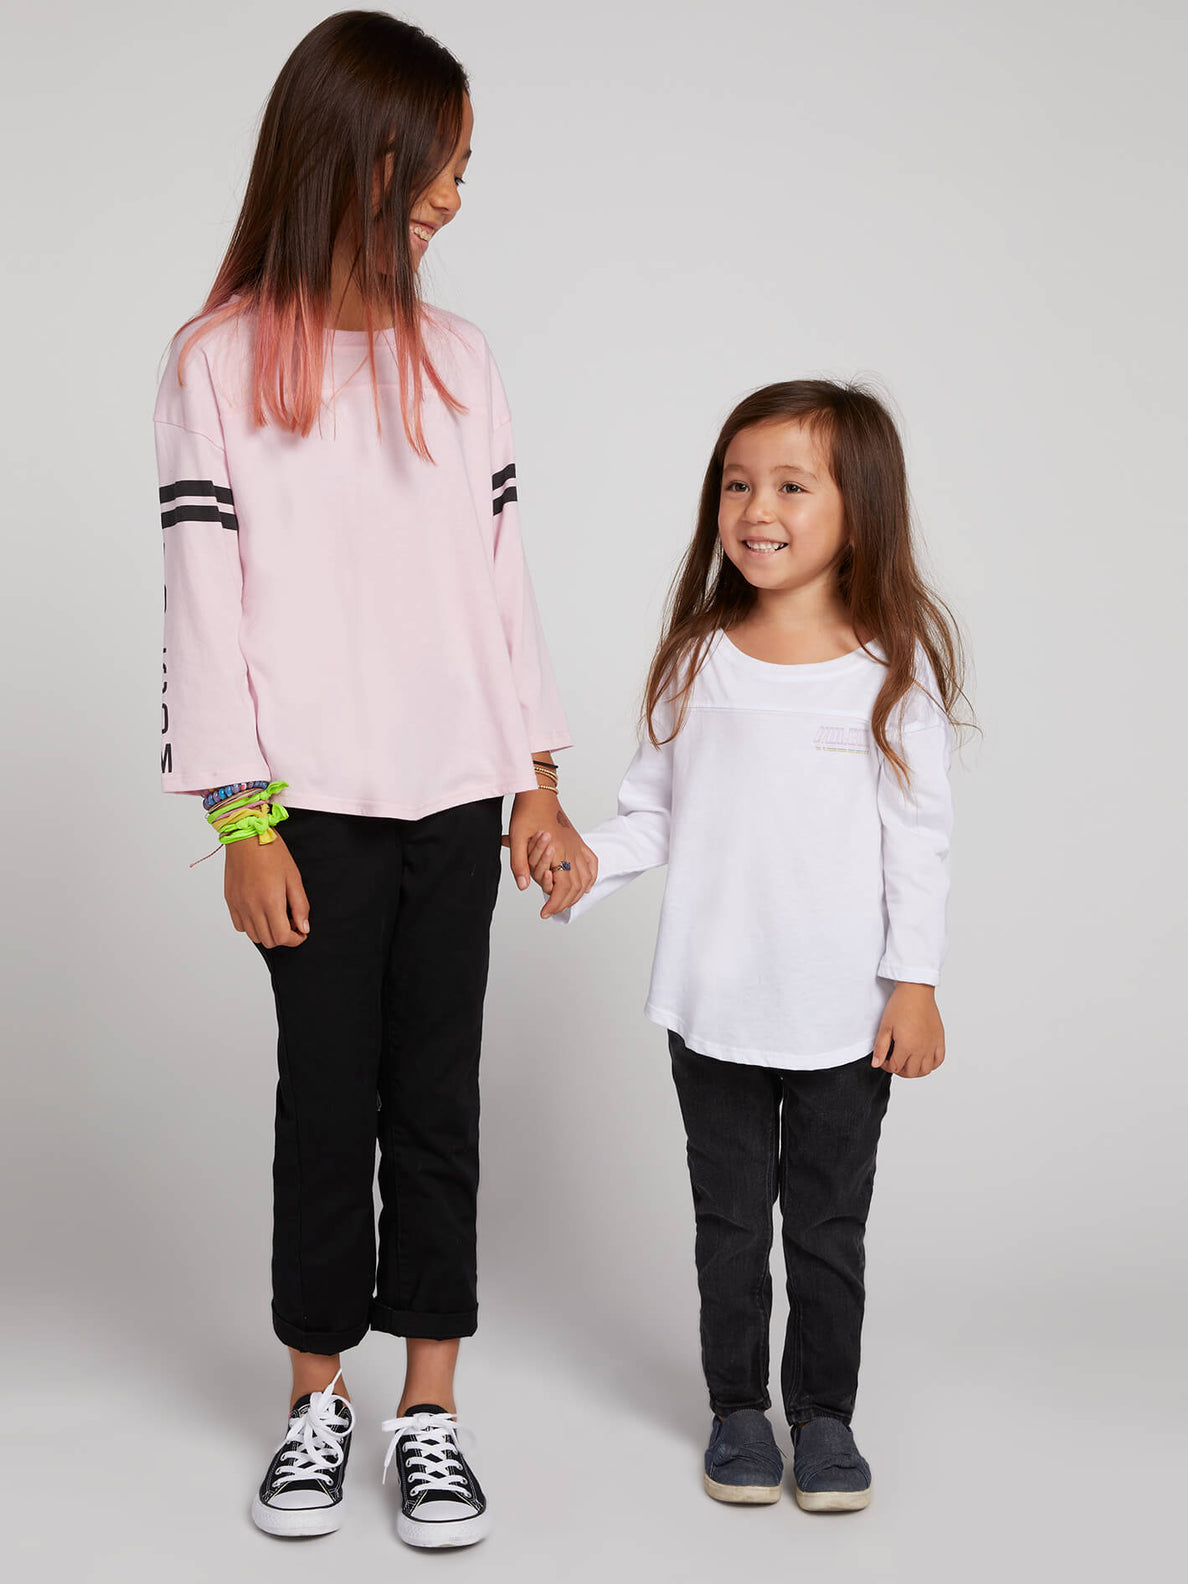 Little Girls Team Vlcm Long Sleeve - White